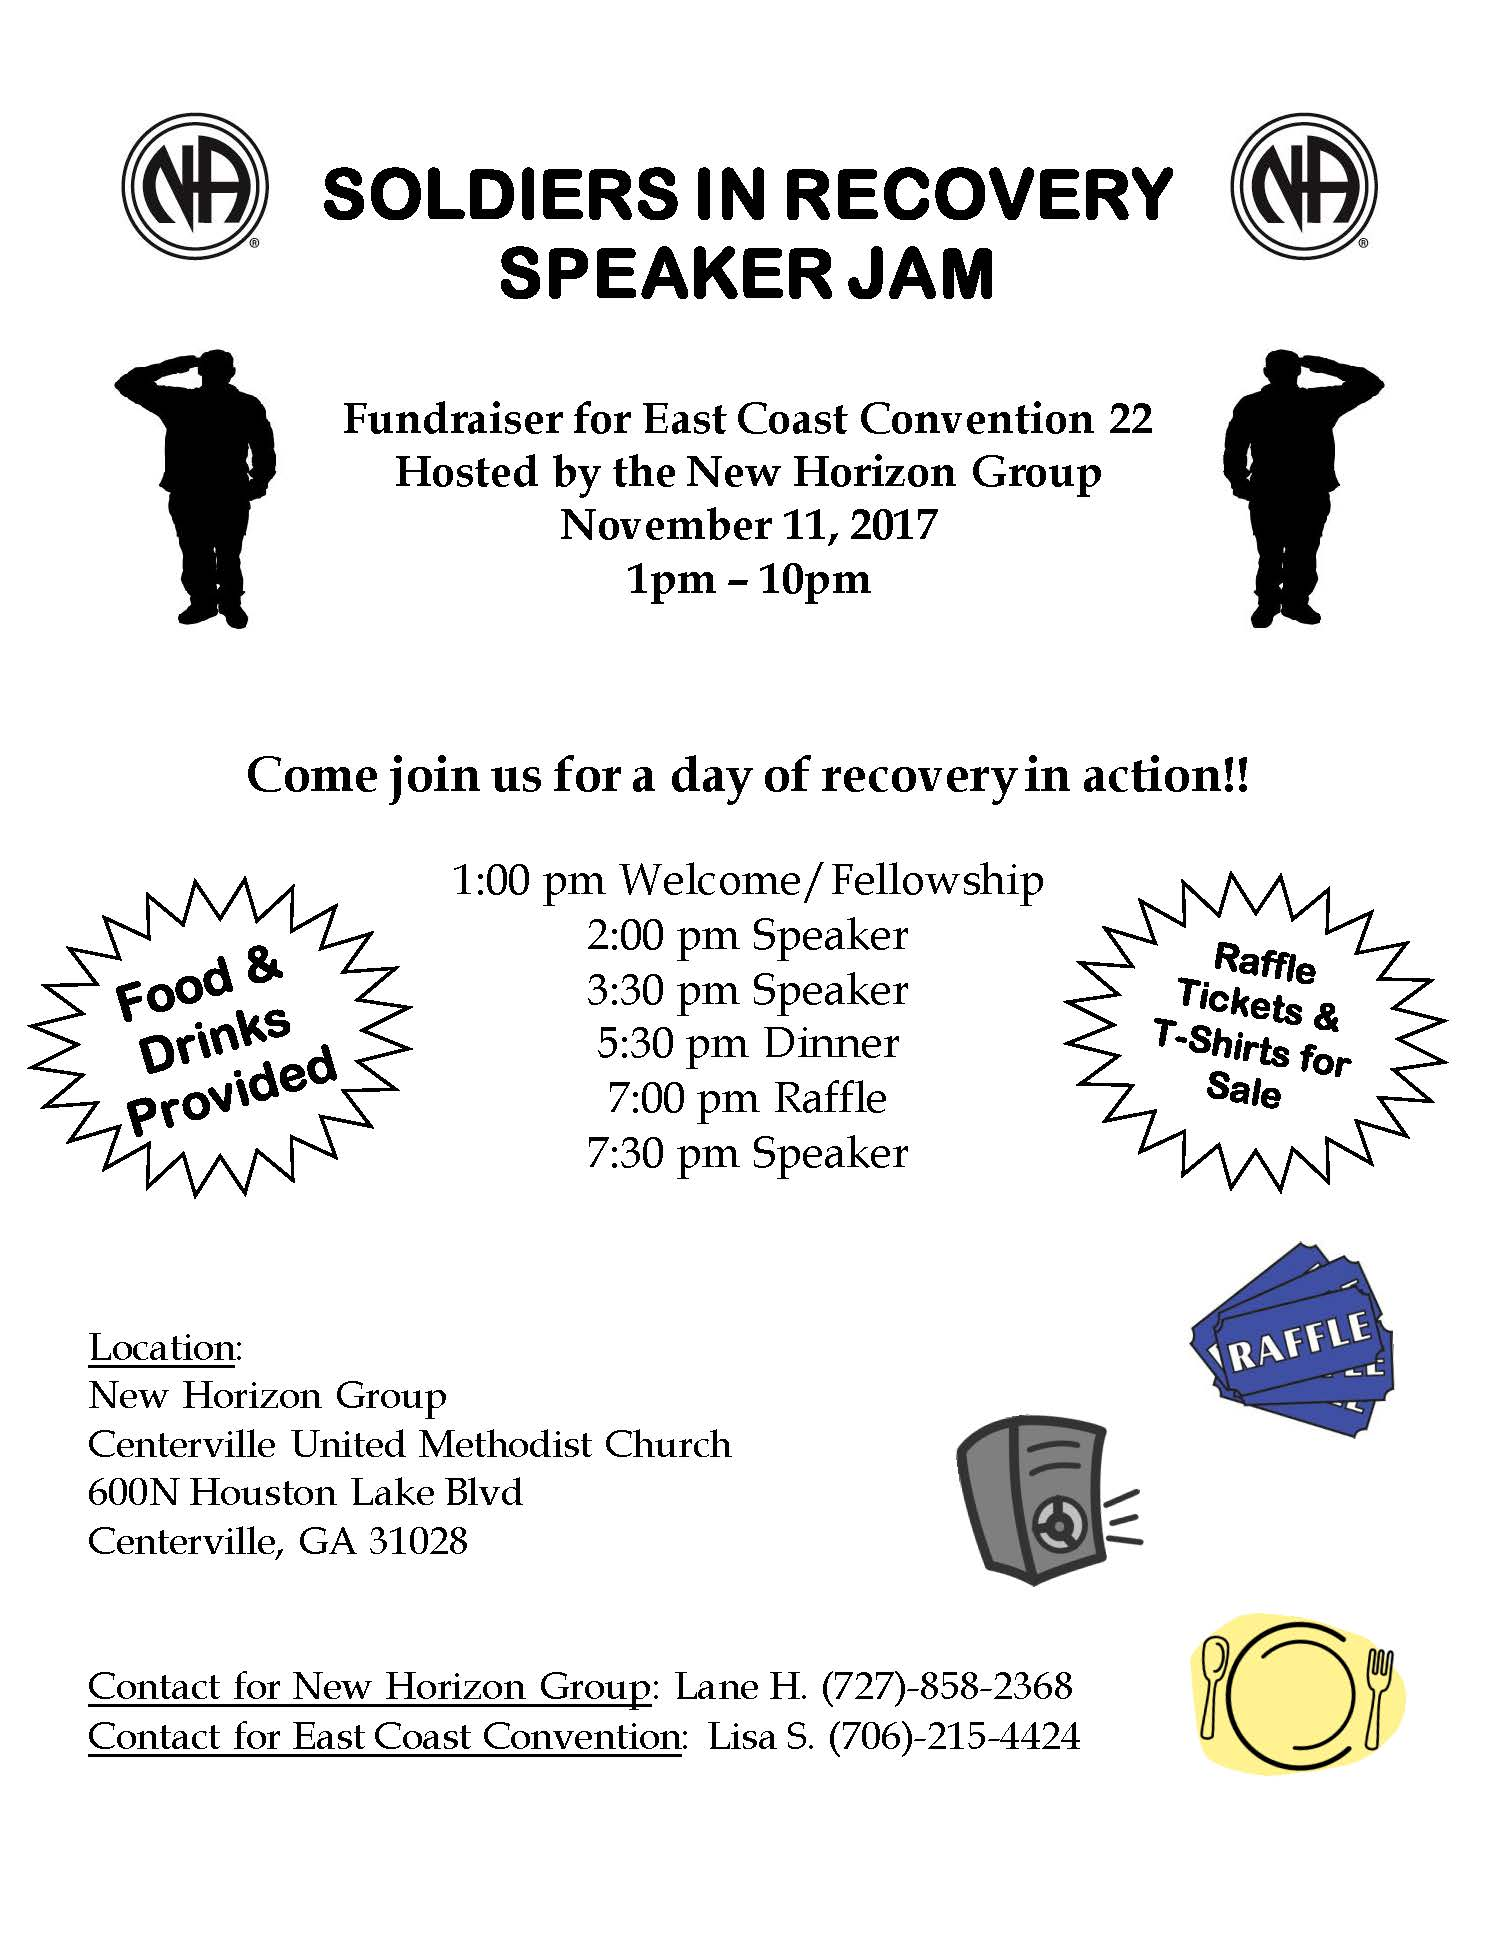 SOLDIERS IN RECOVERY FLYER